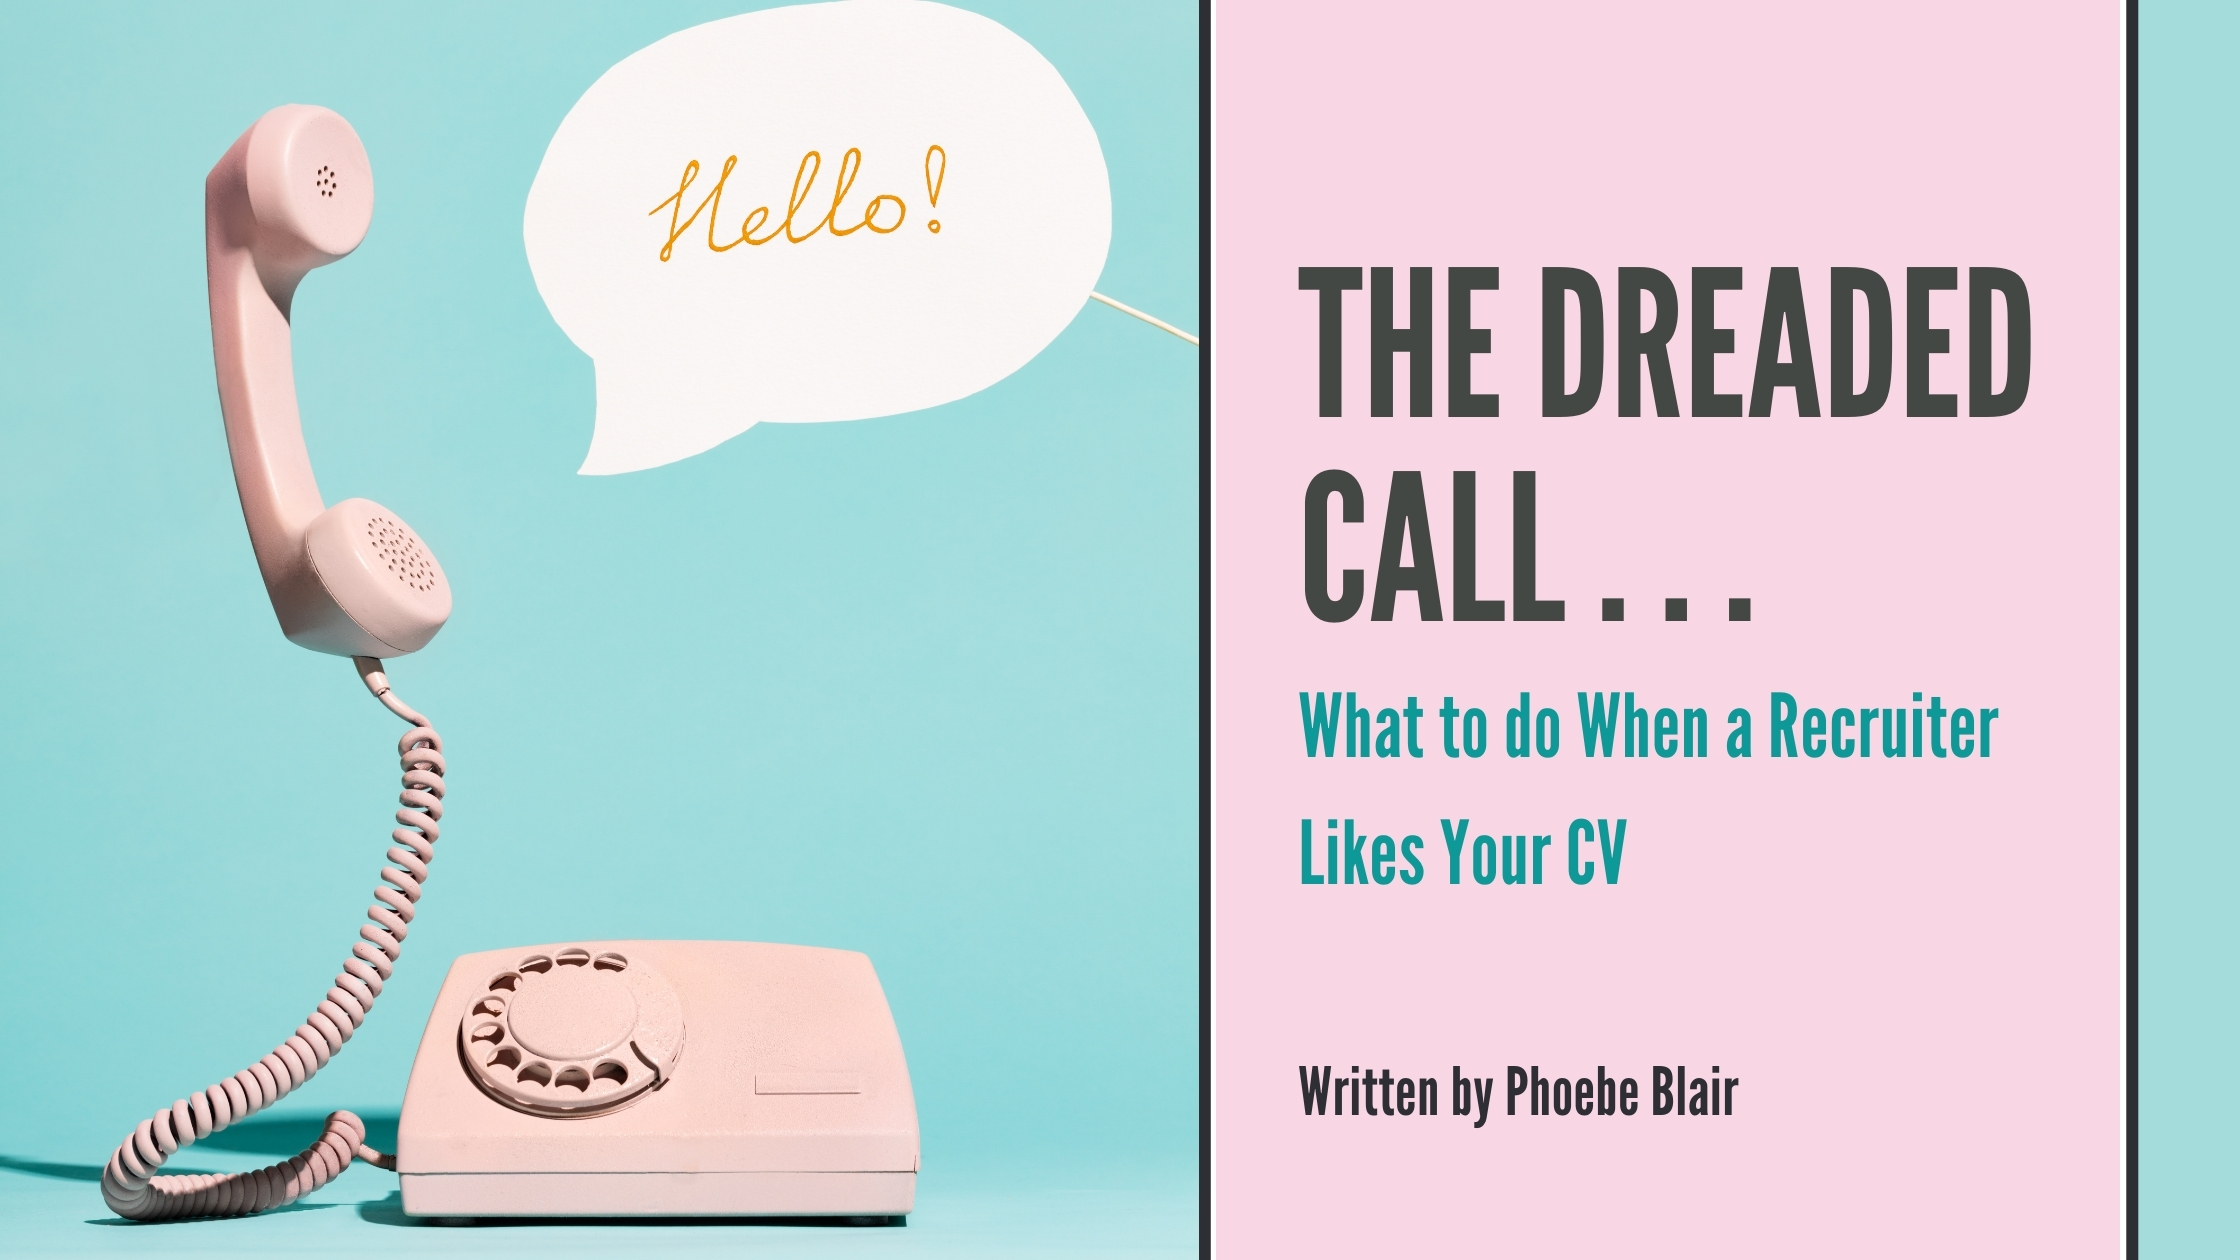 A light blue back ground. On the left is a baby pink rotary phone with a speech bubble. Instead the speech bubble reads 'Hello!' in thin orange cursive font. on the right of the image is a vertical pink box, inside the box reads 'The Dreaded Call' in a dark brown/ block font. Below this in a smaller and teal font reads 'What to do When a Recruiter Likes your CV'. After this in small black text reads 'Written by Phoebe Blair'.